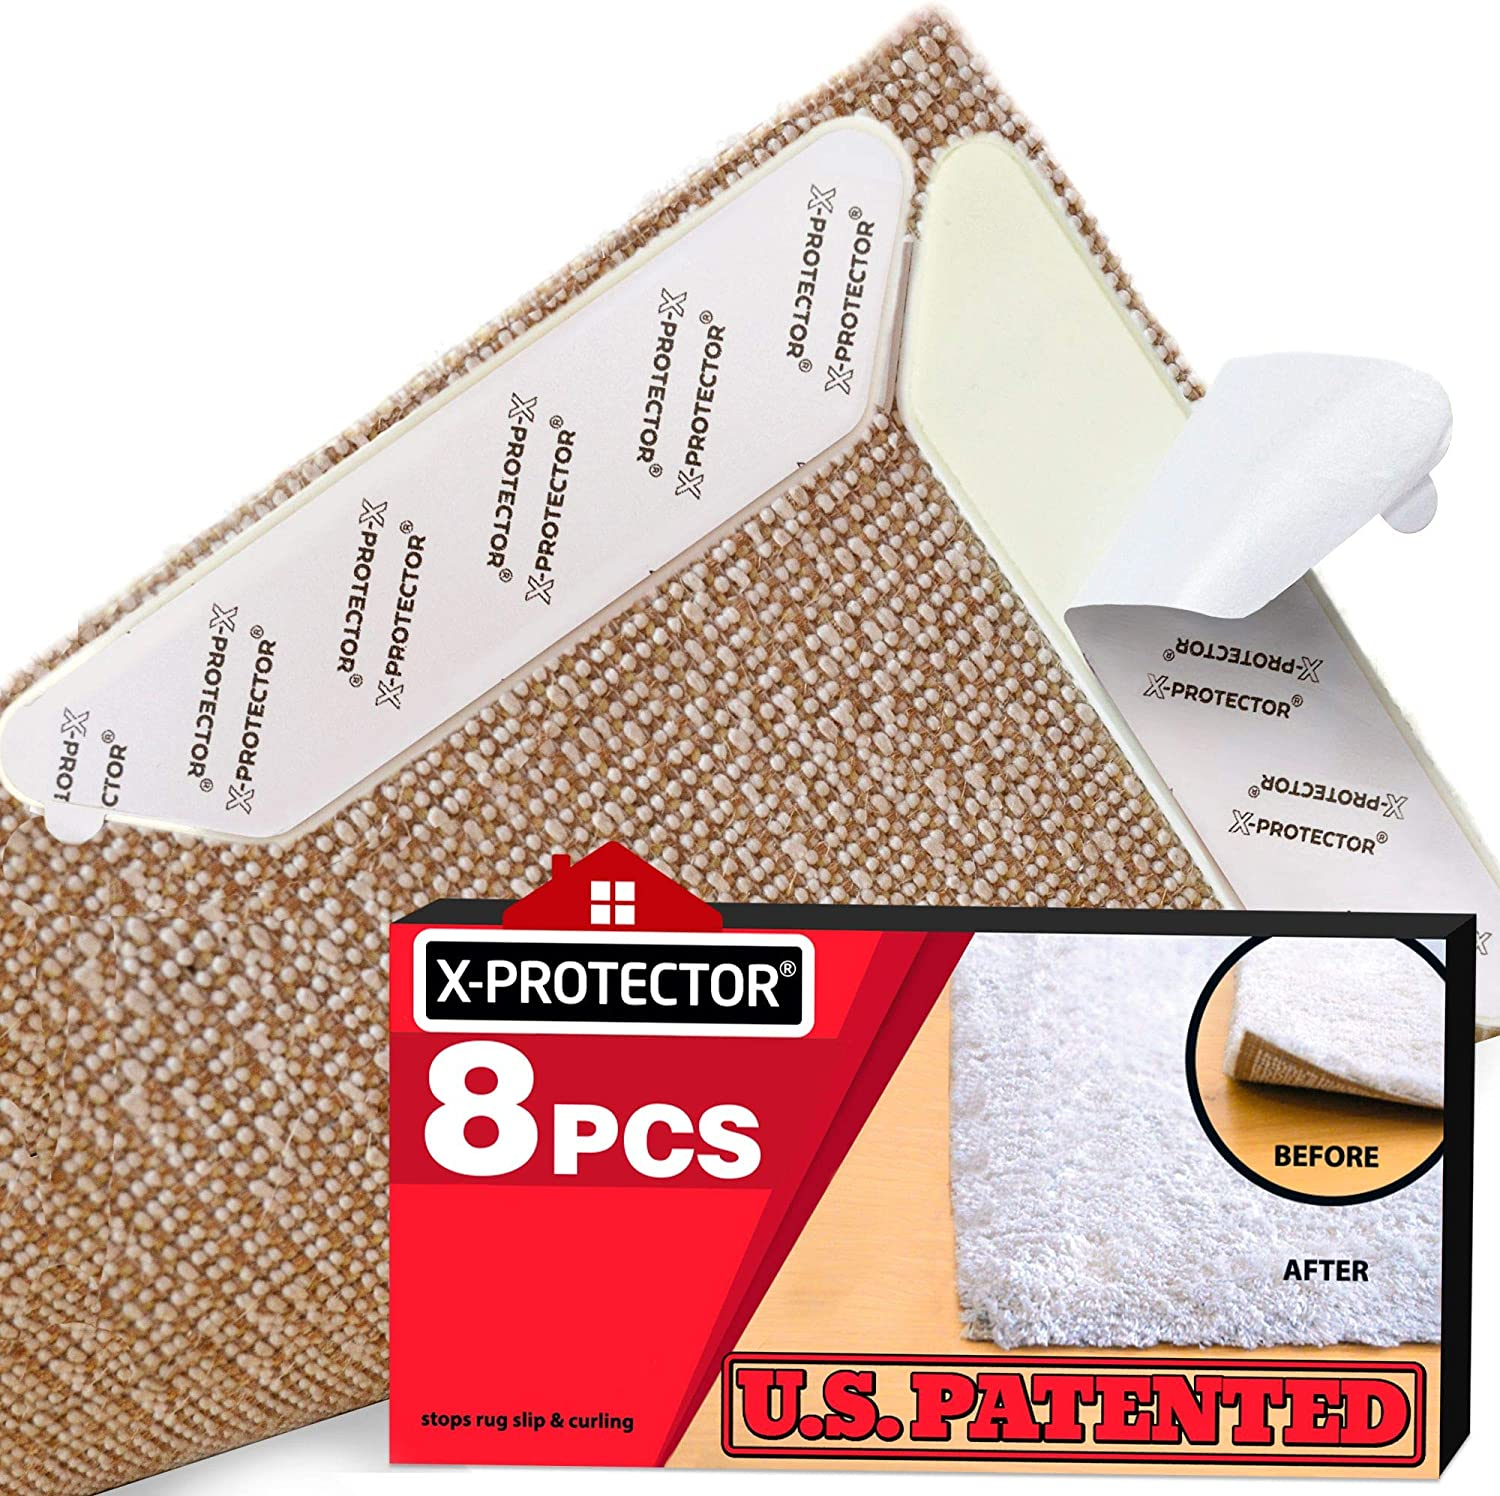 Rug Grippers X-PROTECTOR - New 8 pcs Anti Curling Rug Gripper - Rug Pad - Keeps Your Rug in Place & Corners Flat - Carpet Gripper Renewable Gripper Tape - Rug Tape. Original Brand - Avoid The Copies! - -